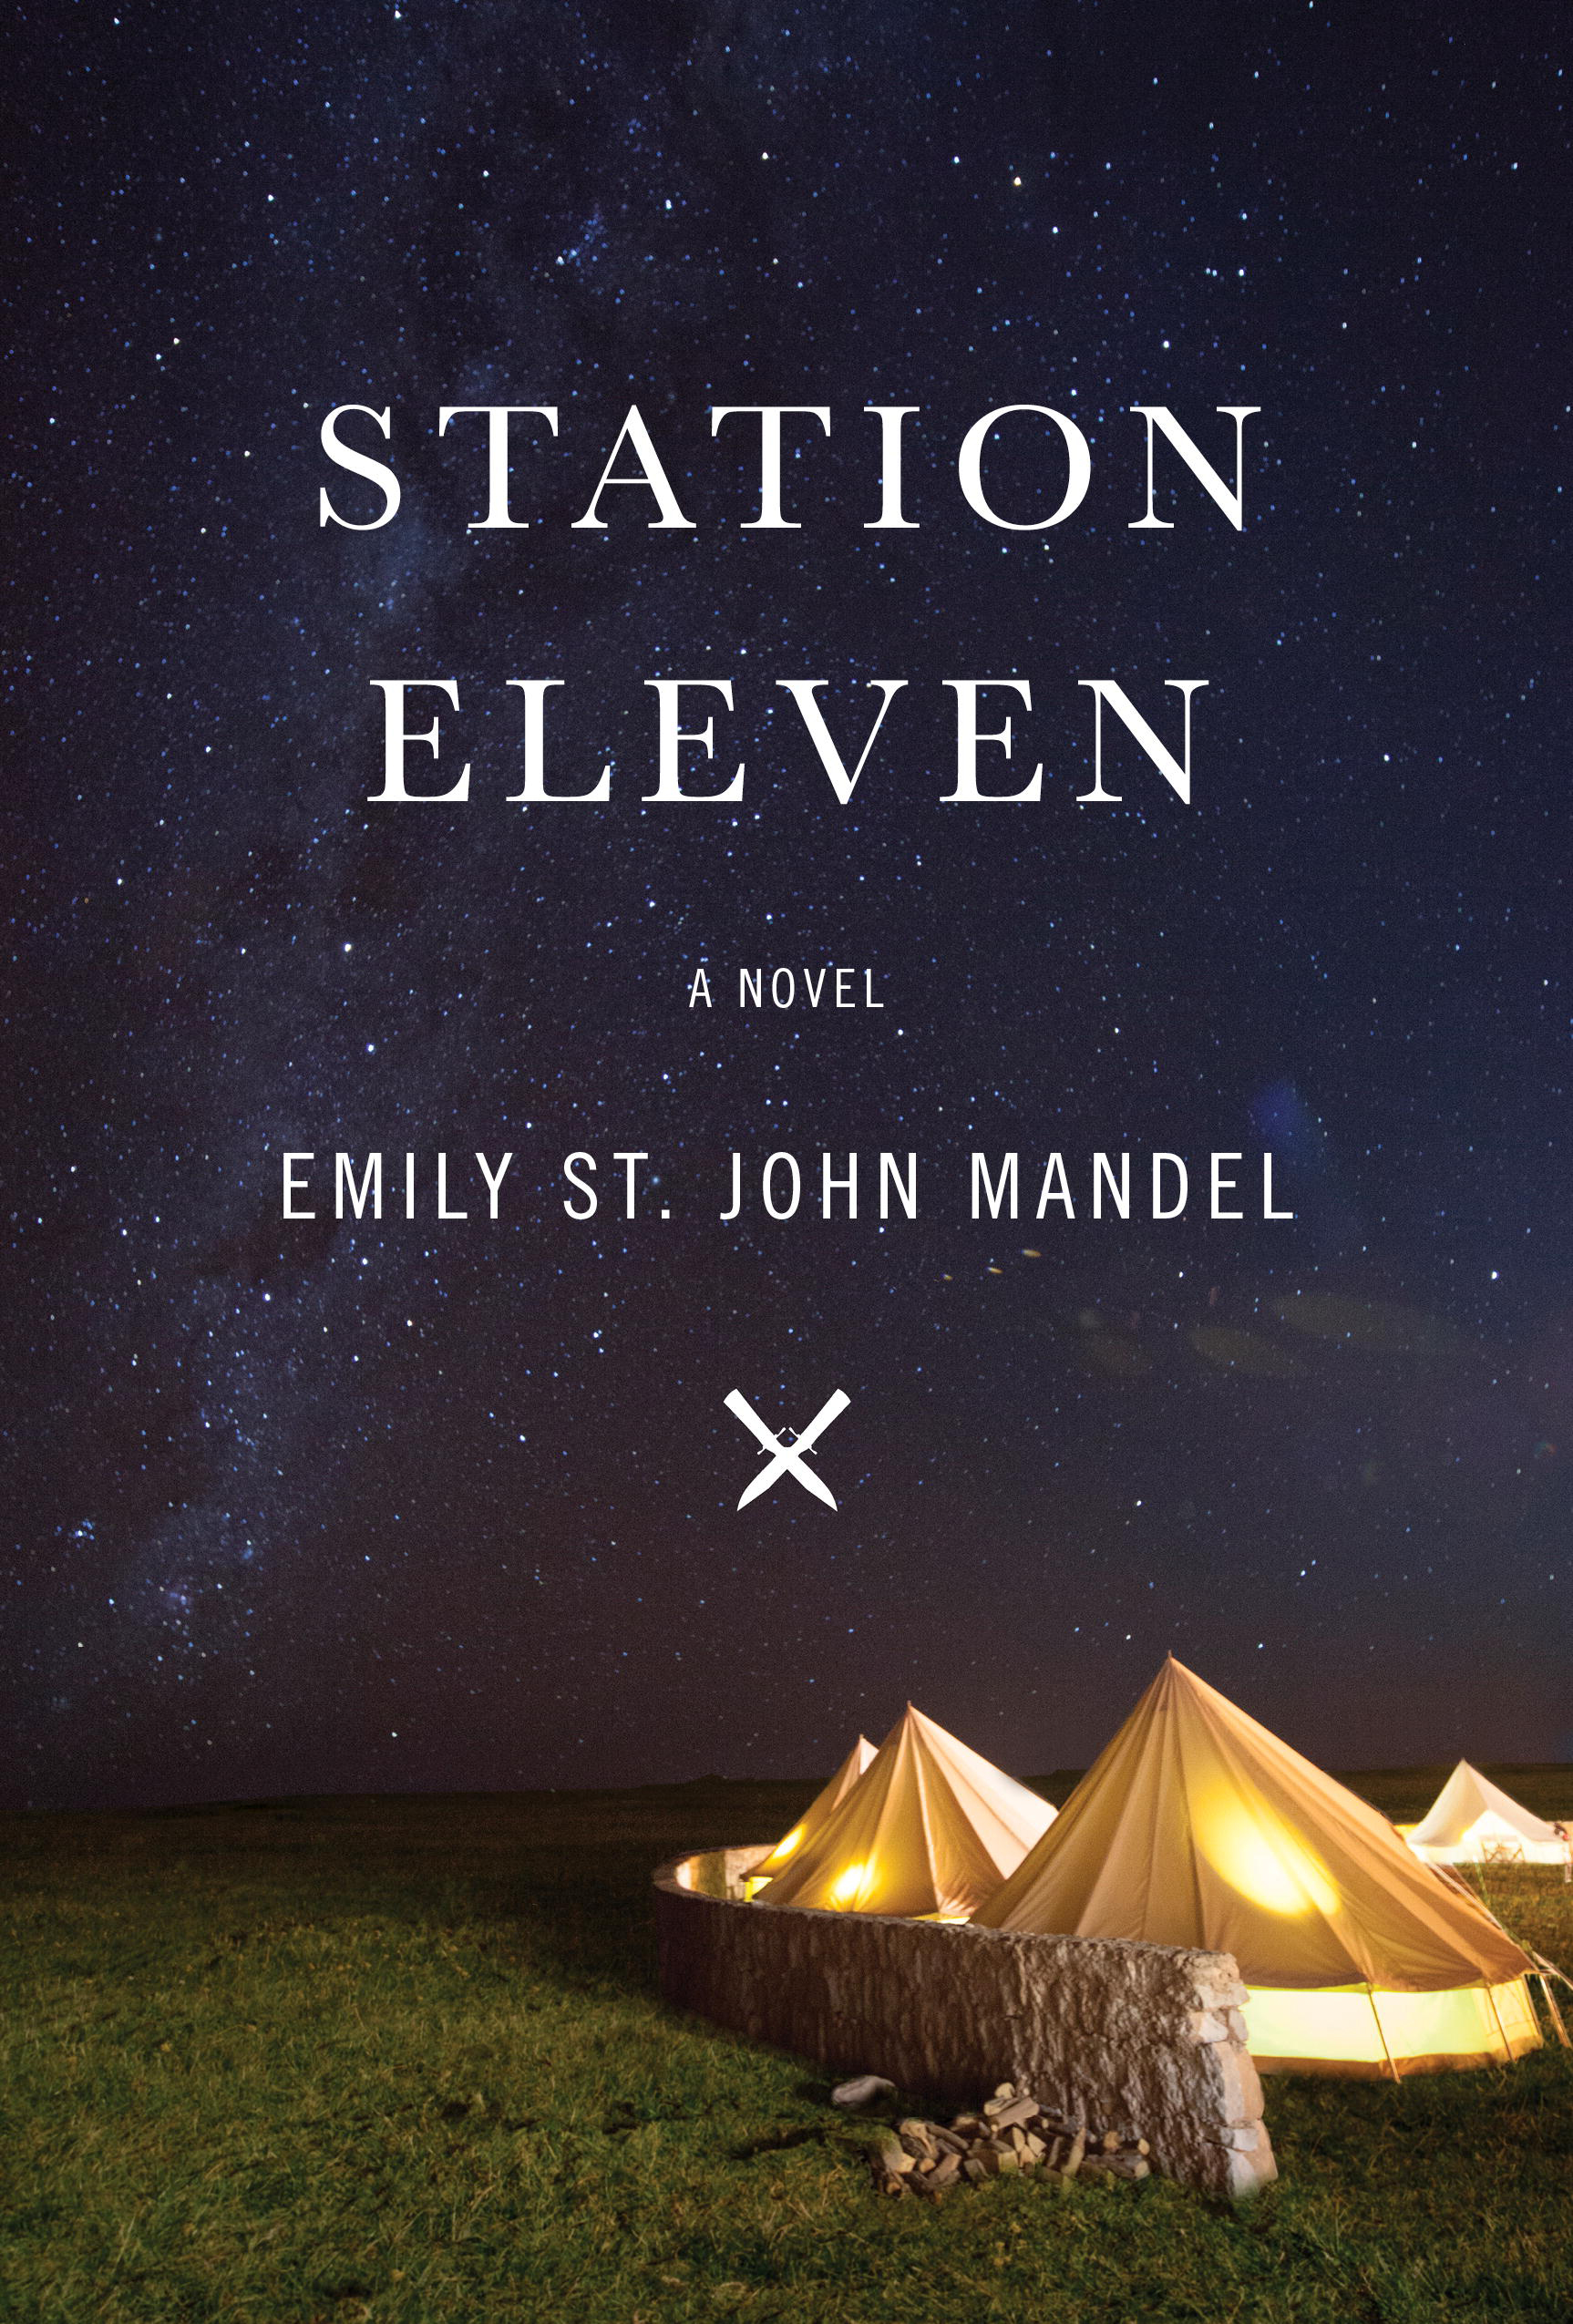 Station Eleven by Emily St. John Mandel was chosen as this year's Common Reading title for the Class of 2021